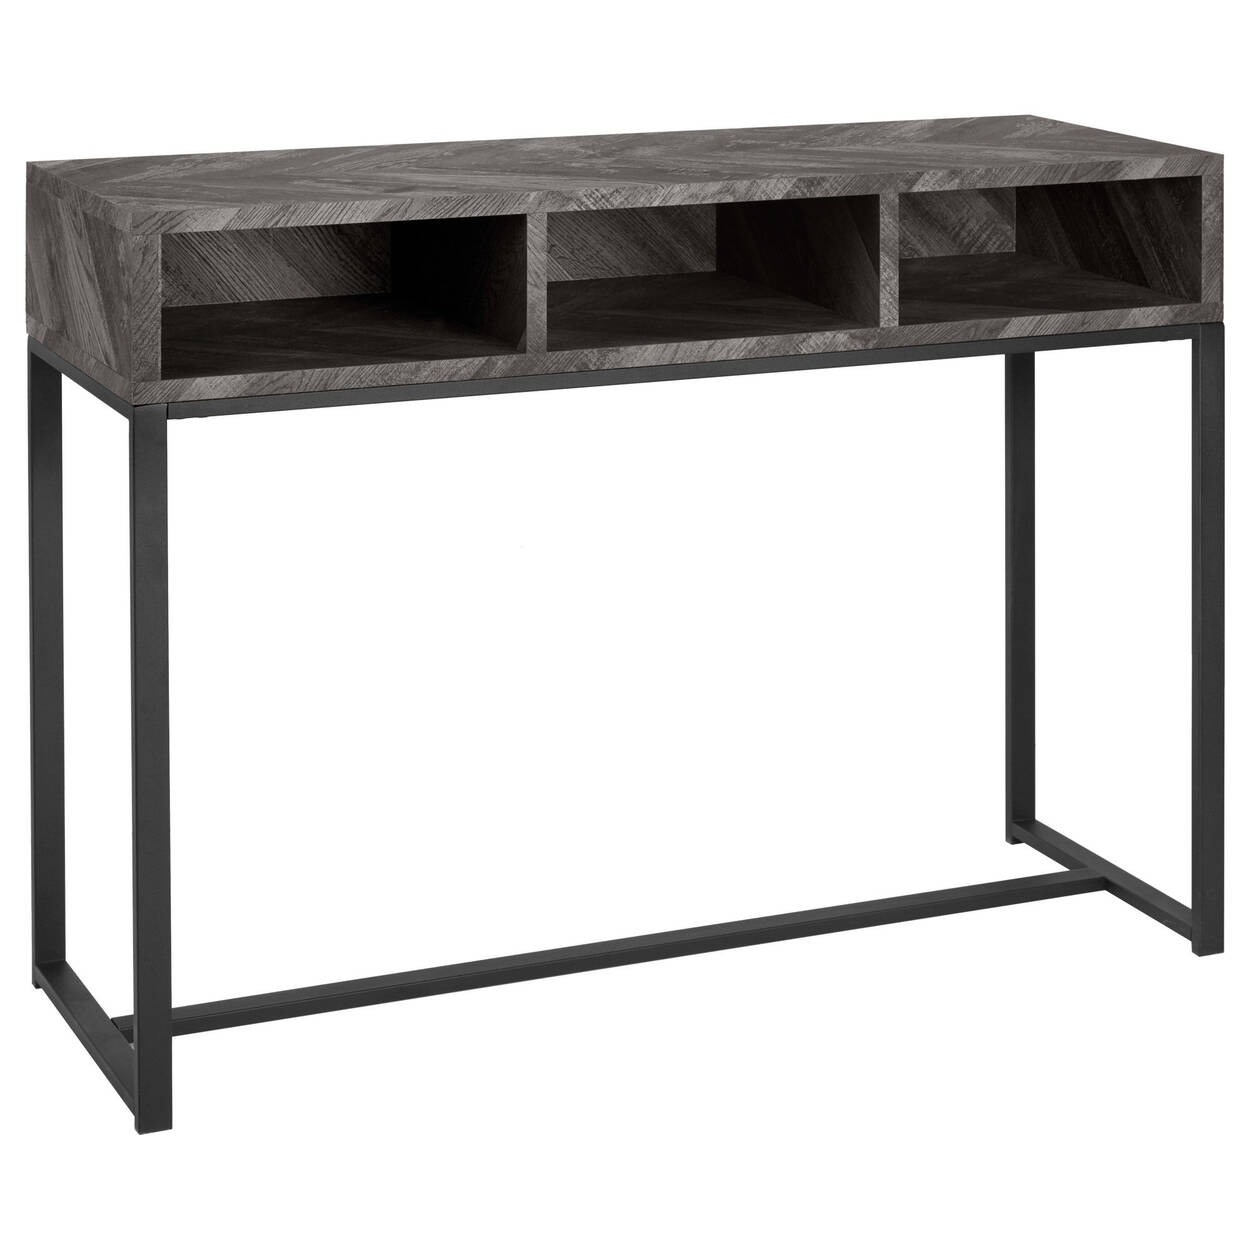 Wood Veneer And Iron Console Table With Three Cubbies Bouclaircom